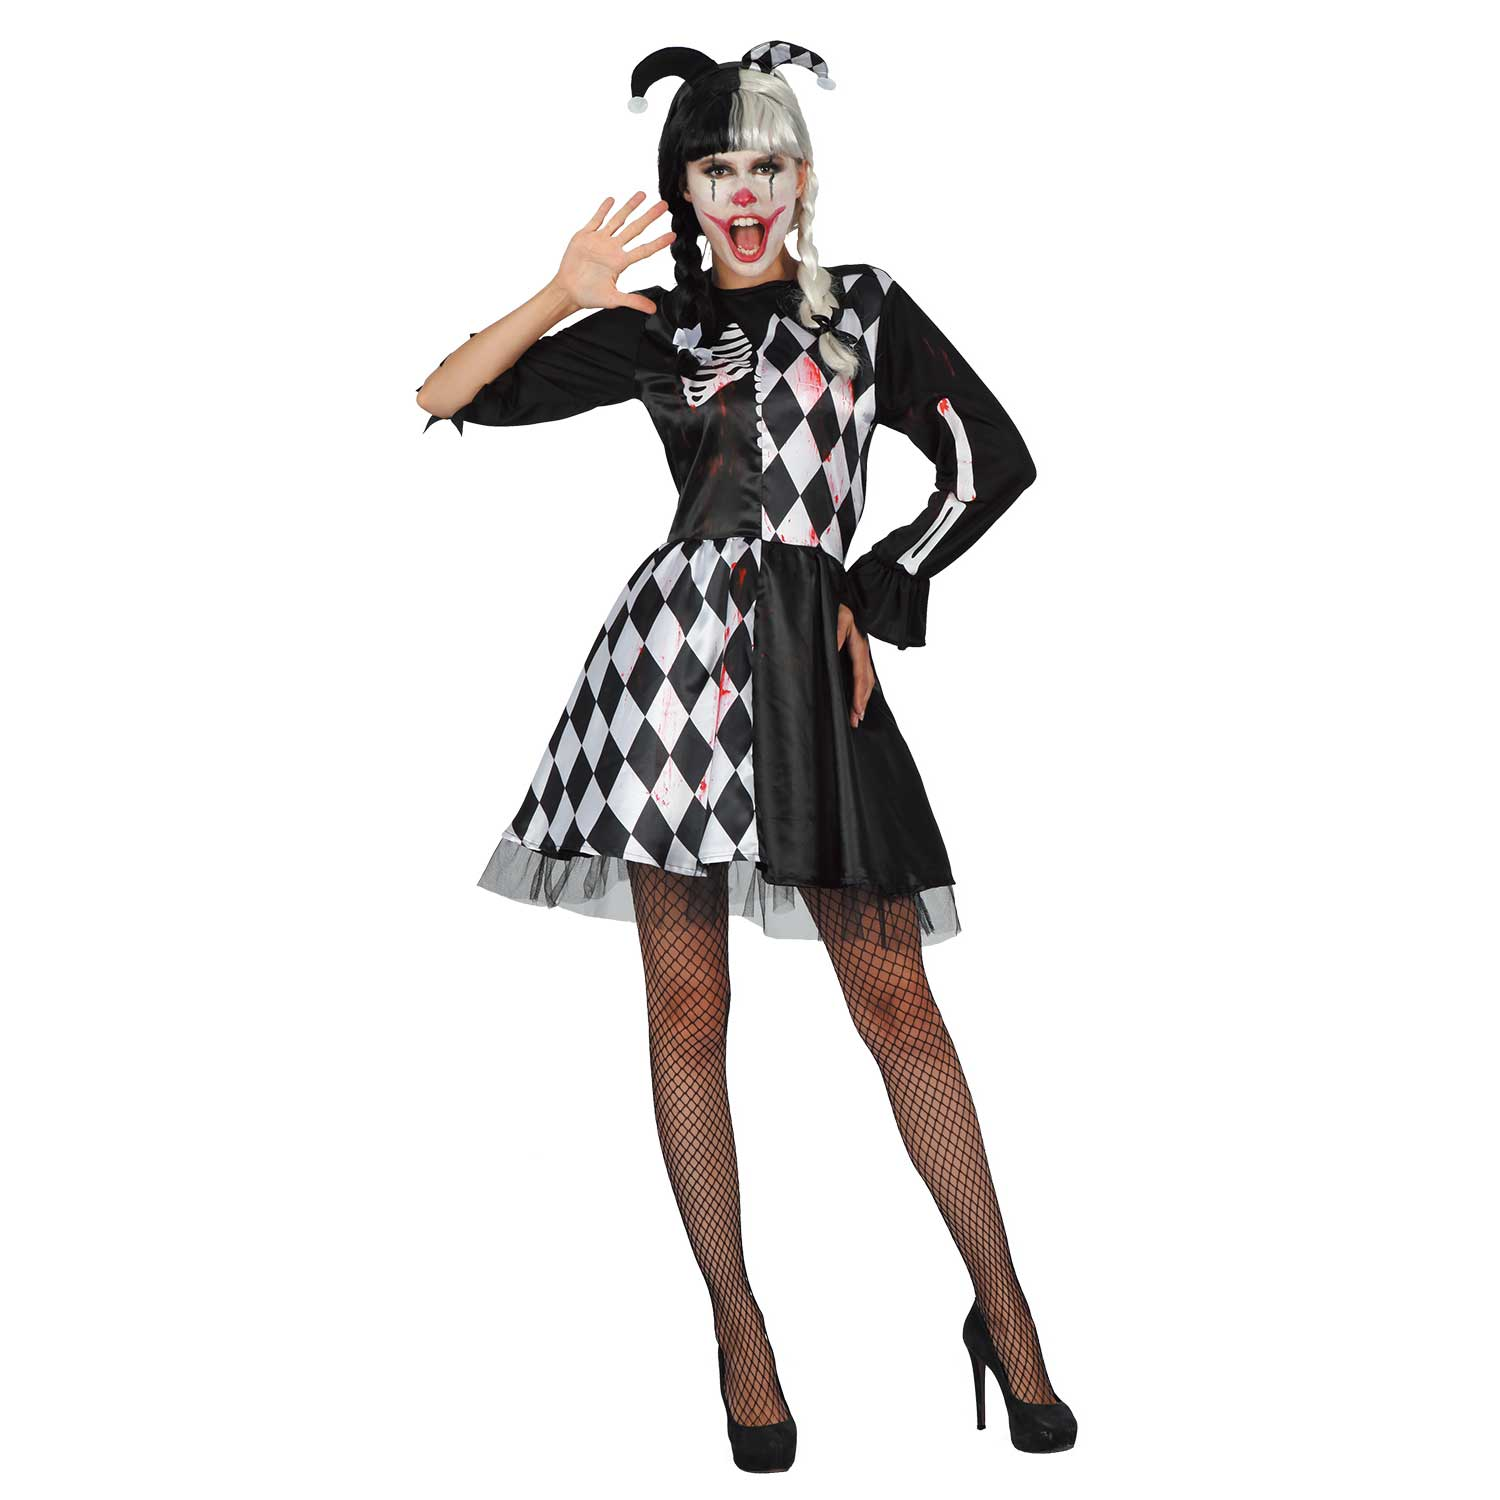 Halloween Costumes For Women 2019.Ladies Cheeky Creepy Clown Costume For Halloween 2019